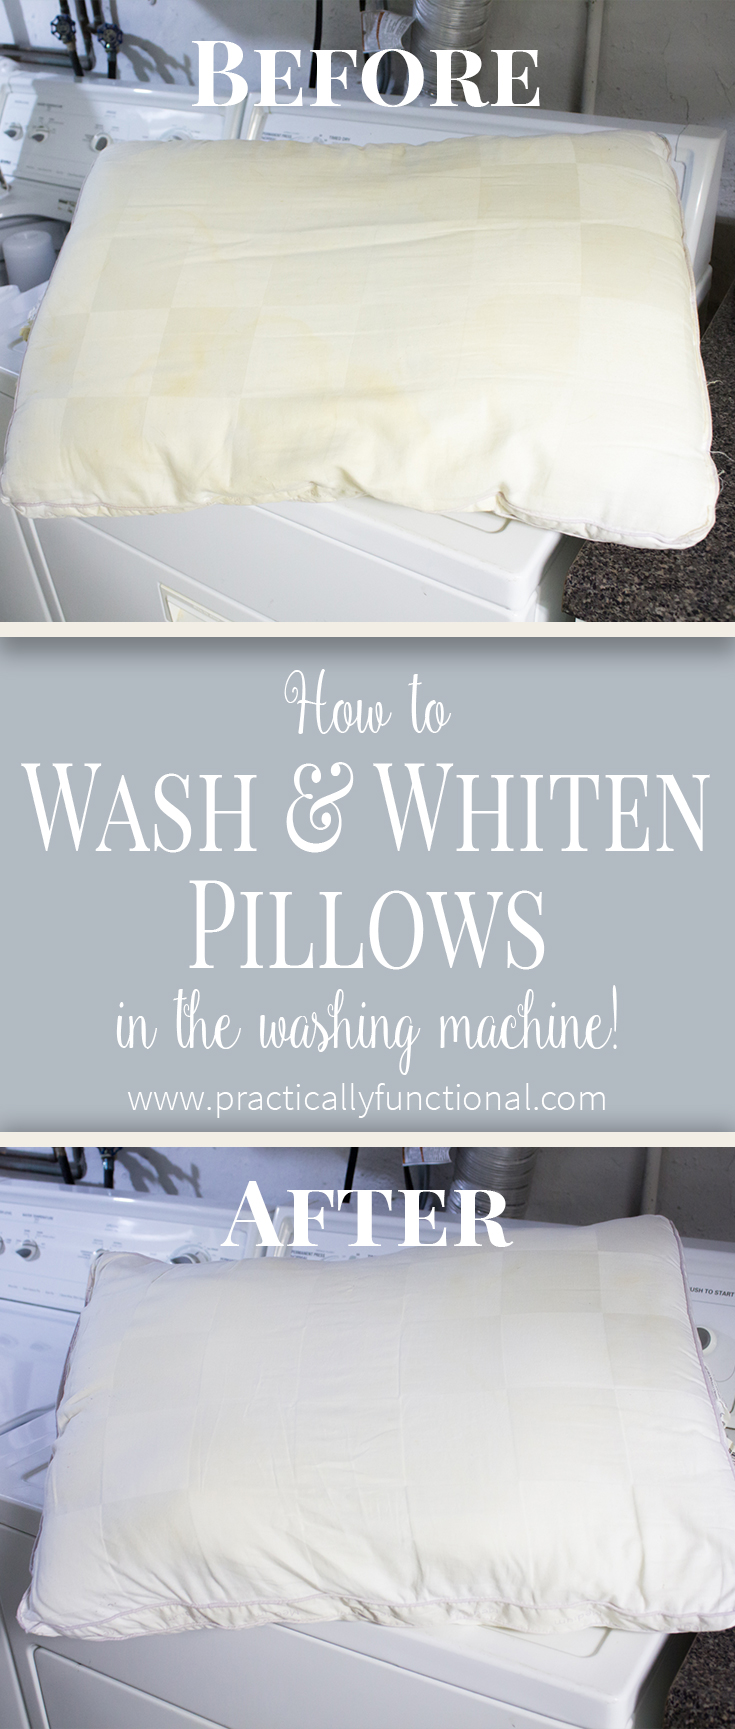 Did you know you can wash & whiten pillows in your washing machine?! This tutorial shows you how, and they come out bright white, like new!